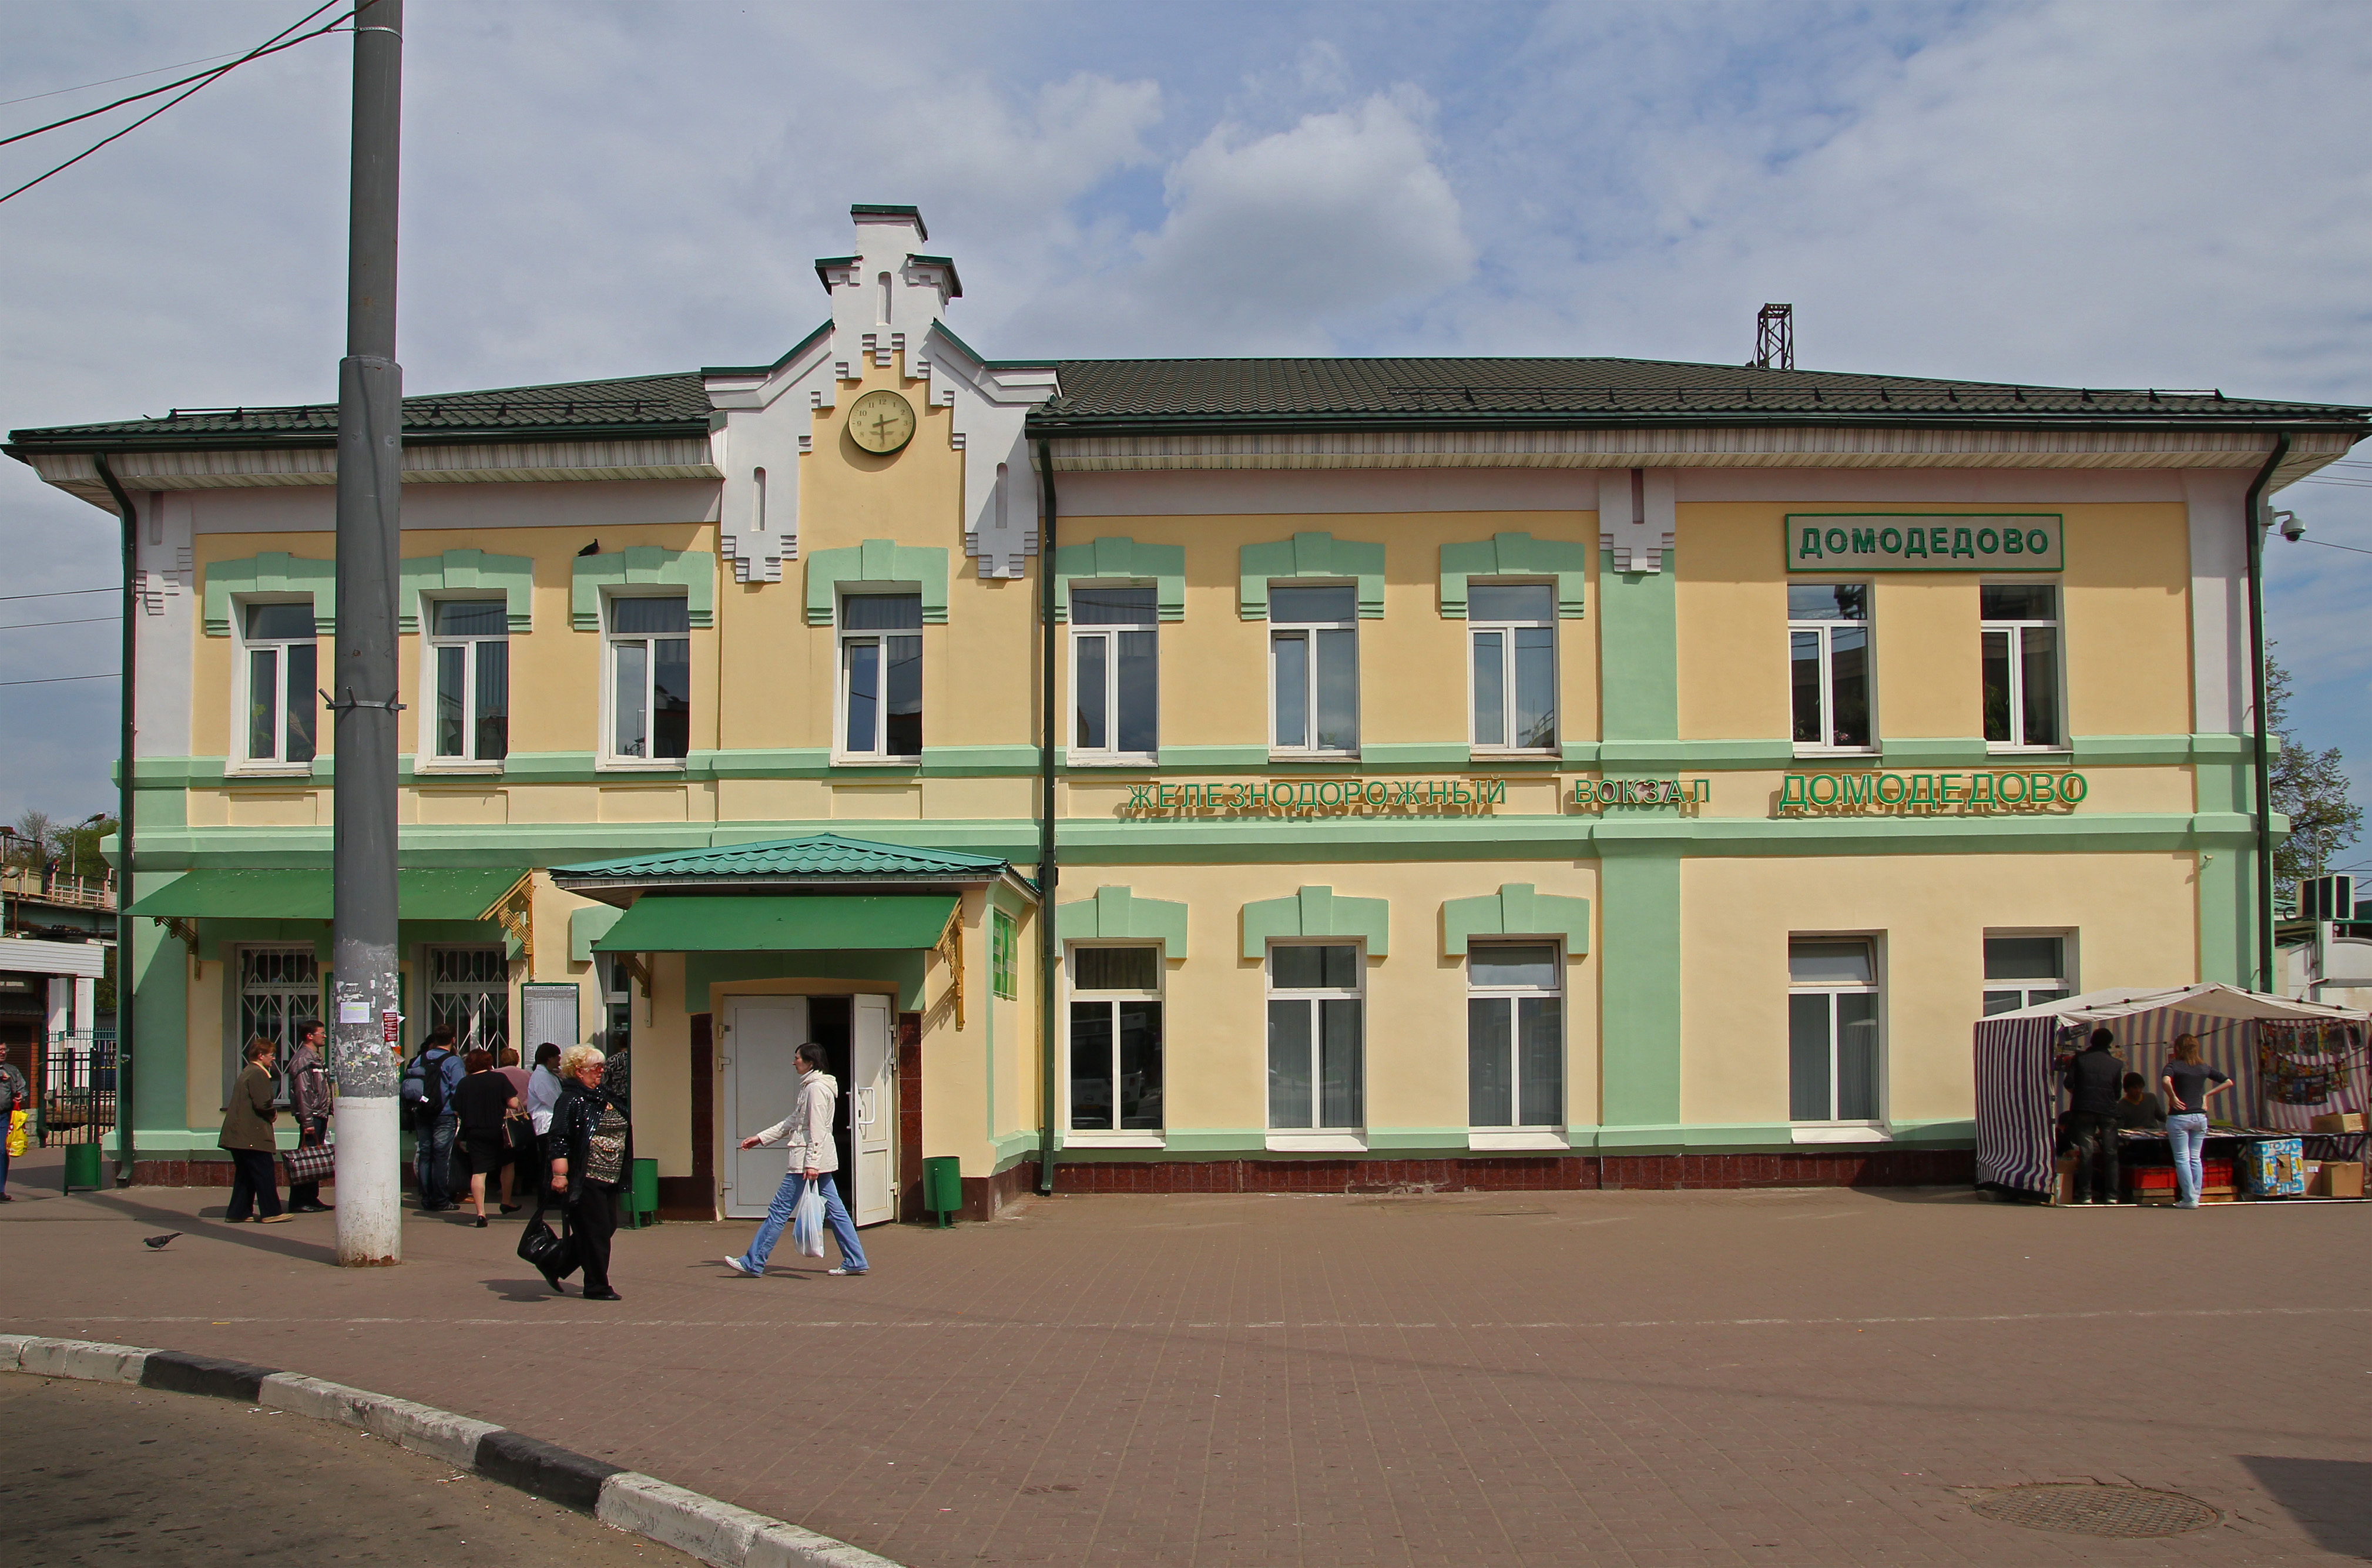 http://dic.academic.ru/pictures/wiki/files/68/Domodedovo_rail_station_03.jpg